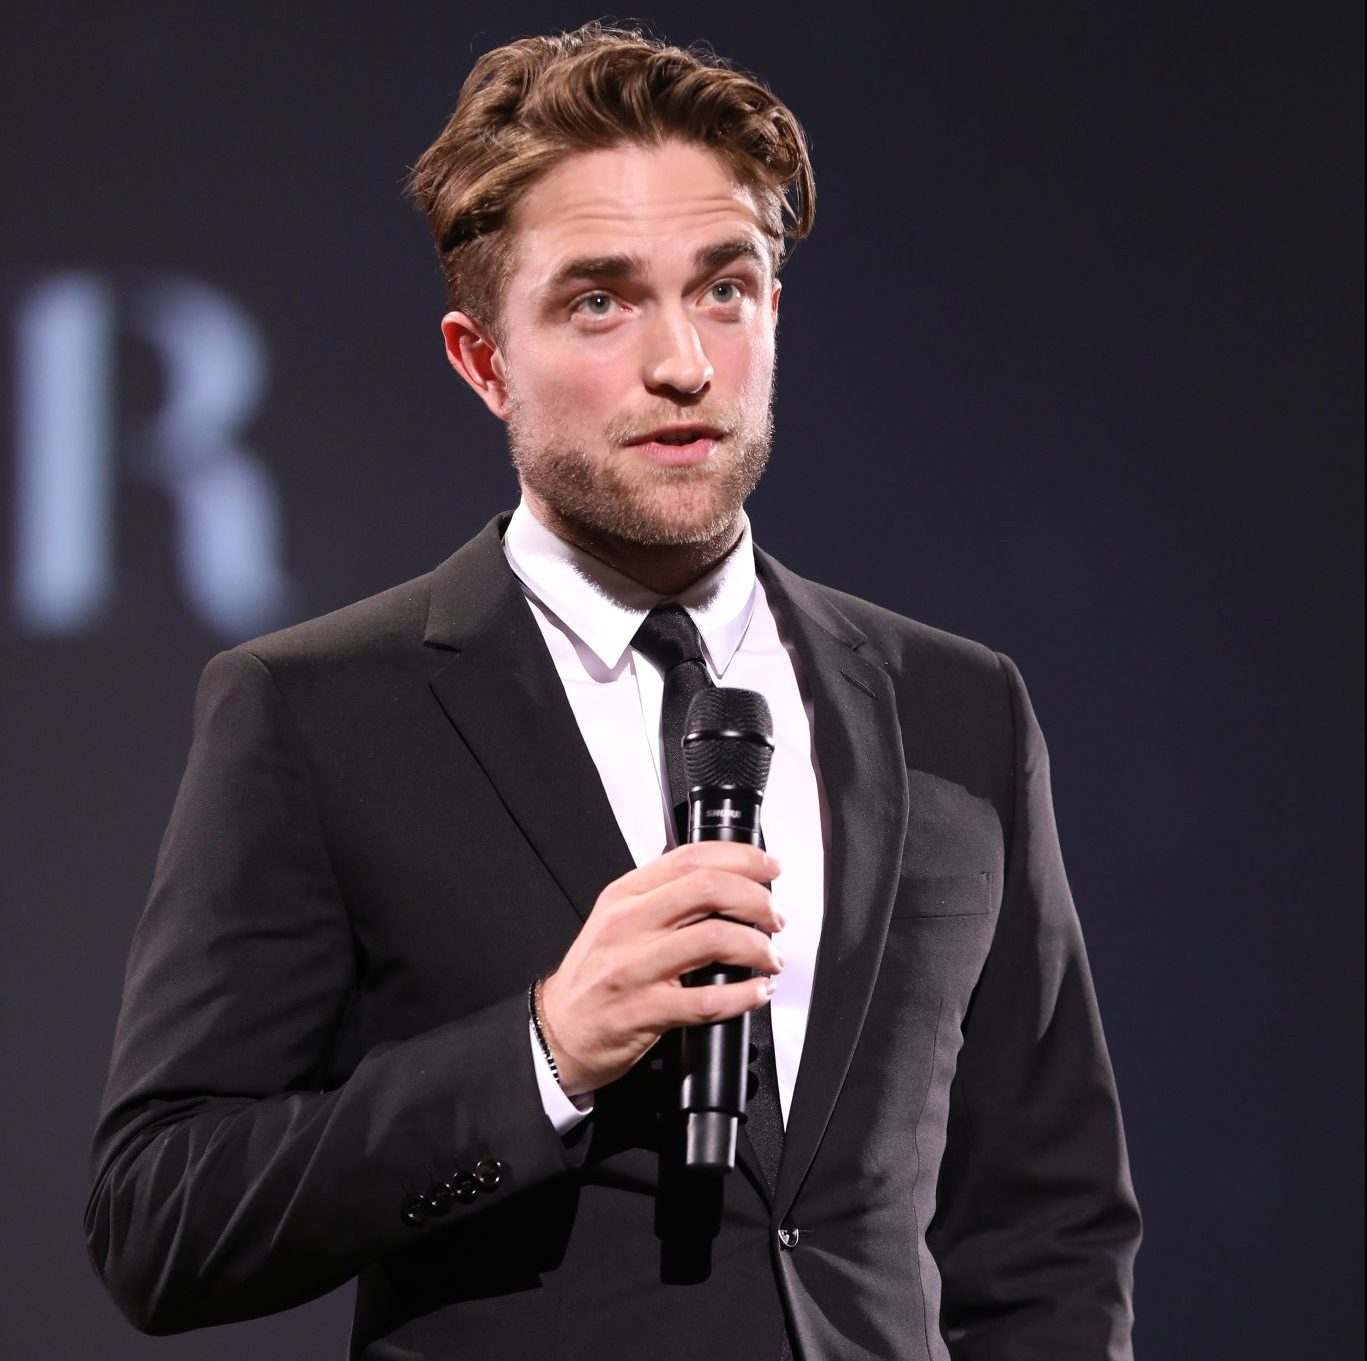 Fotos de Robert Pattinson no Fashion Awards